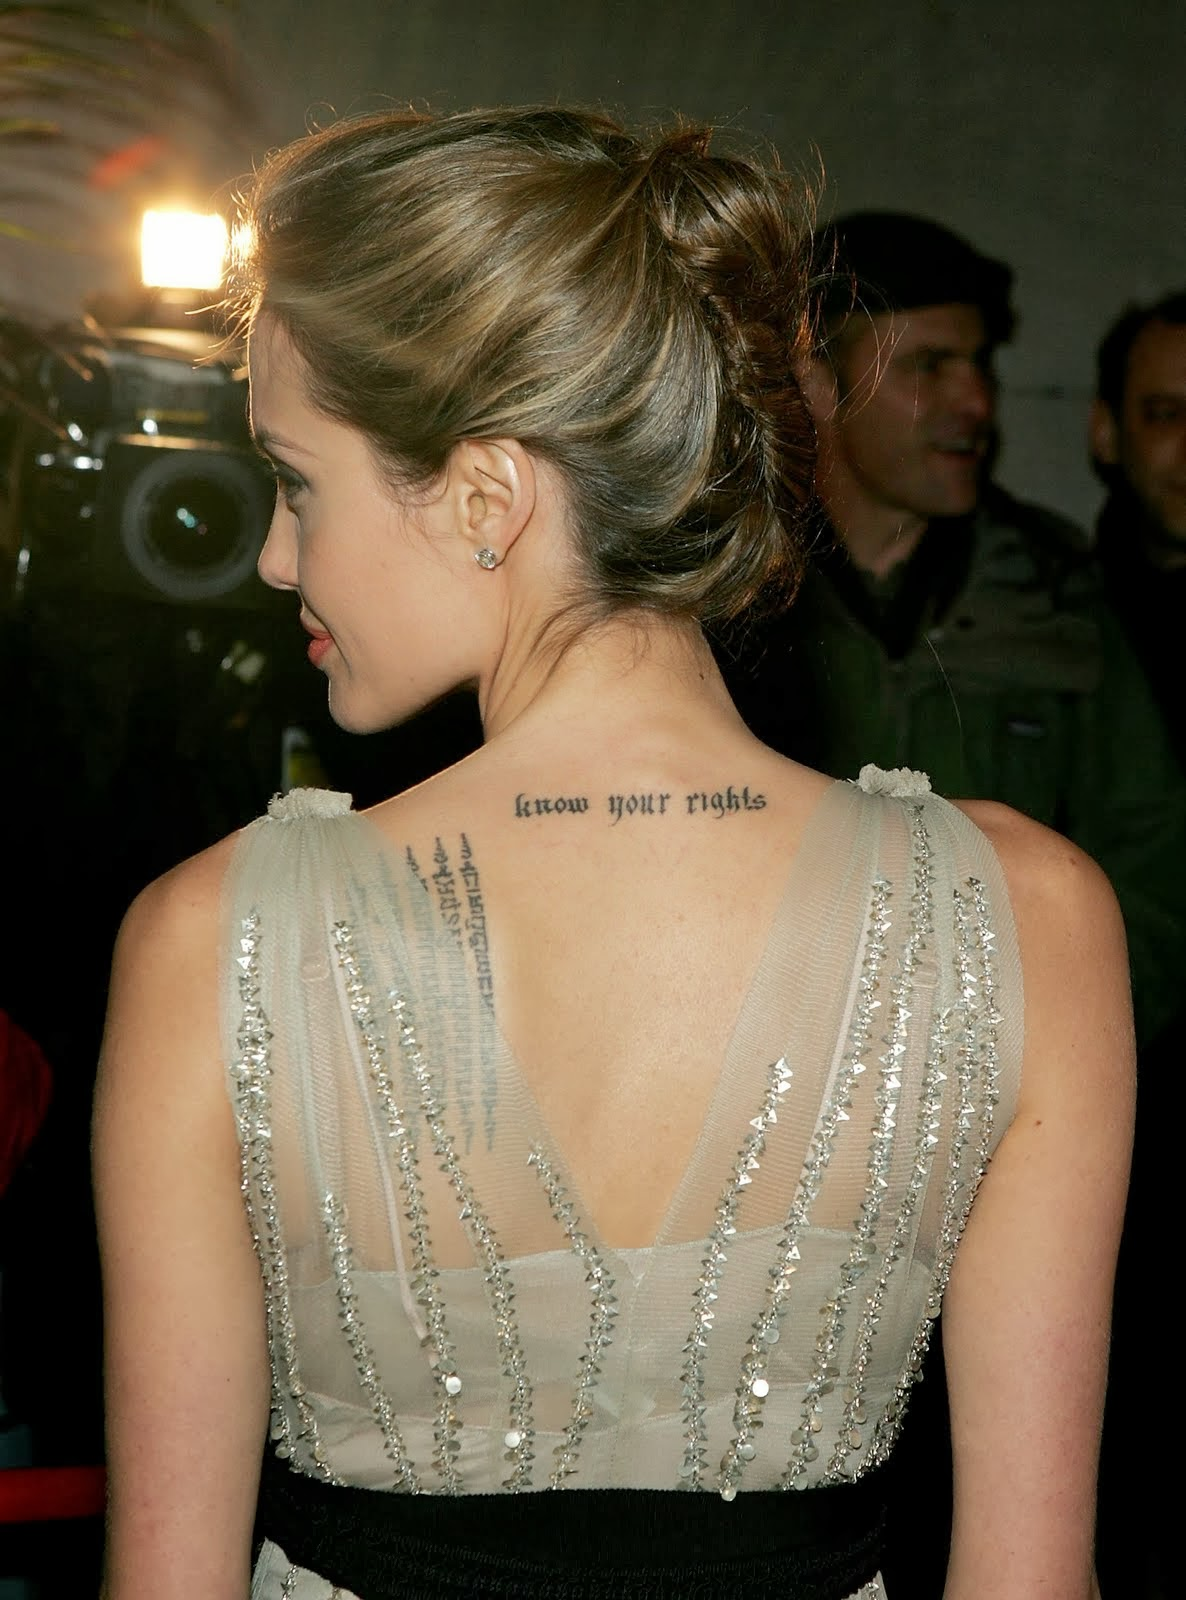 tattoo tattoos designs neck angelina jolie rights know tattooed amazing hair idea quote